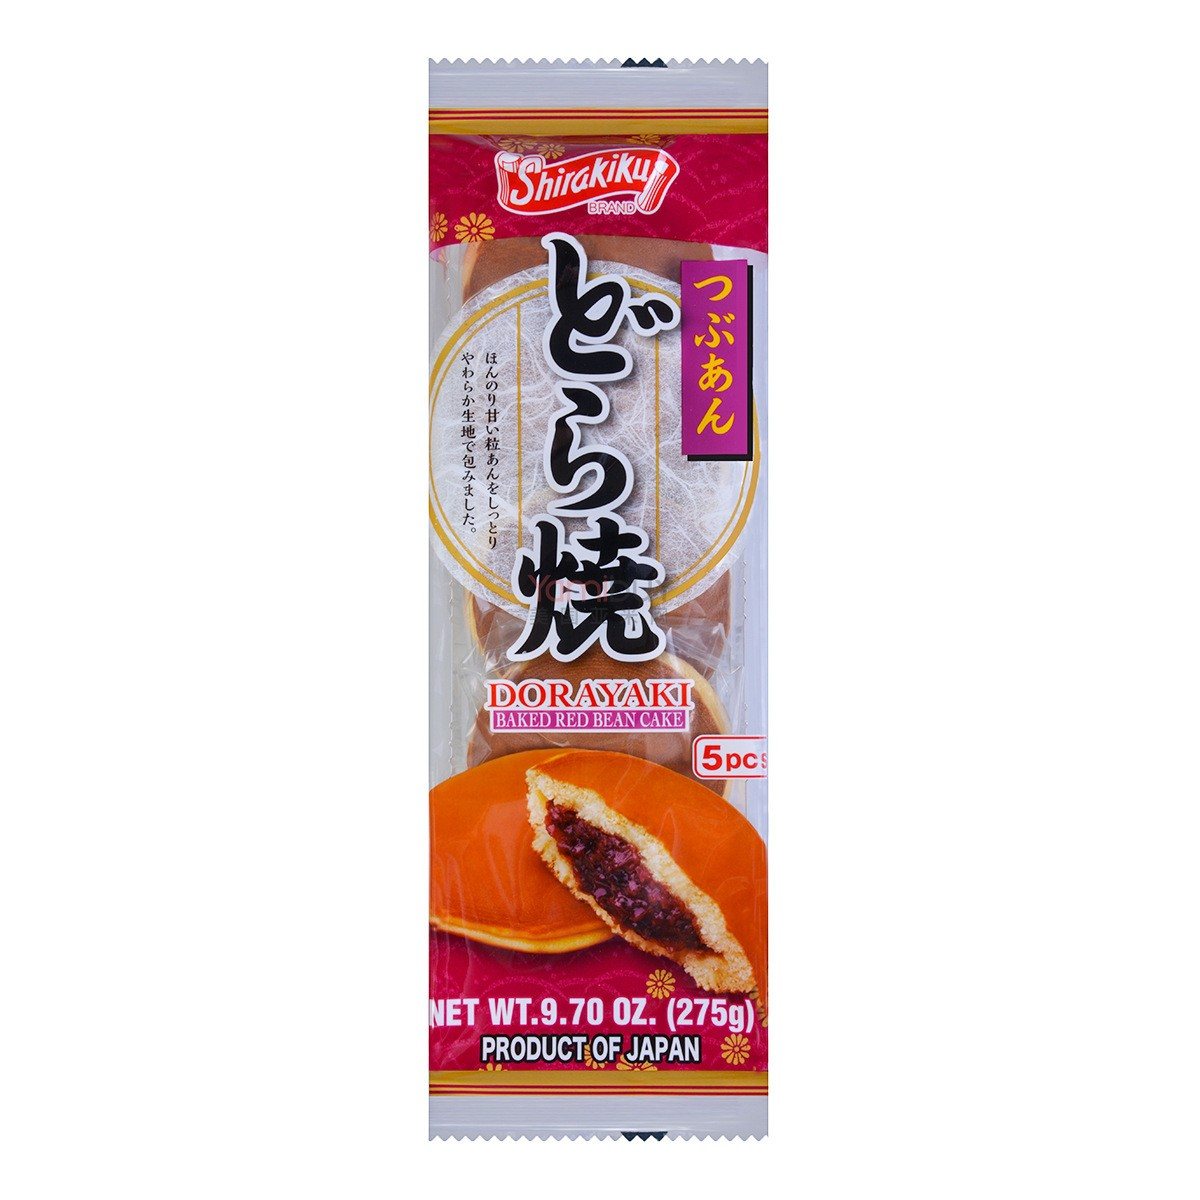 SHIRAKIKU Dorayaki Baked Red Bean Cake 5pc